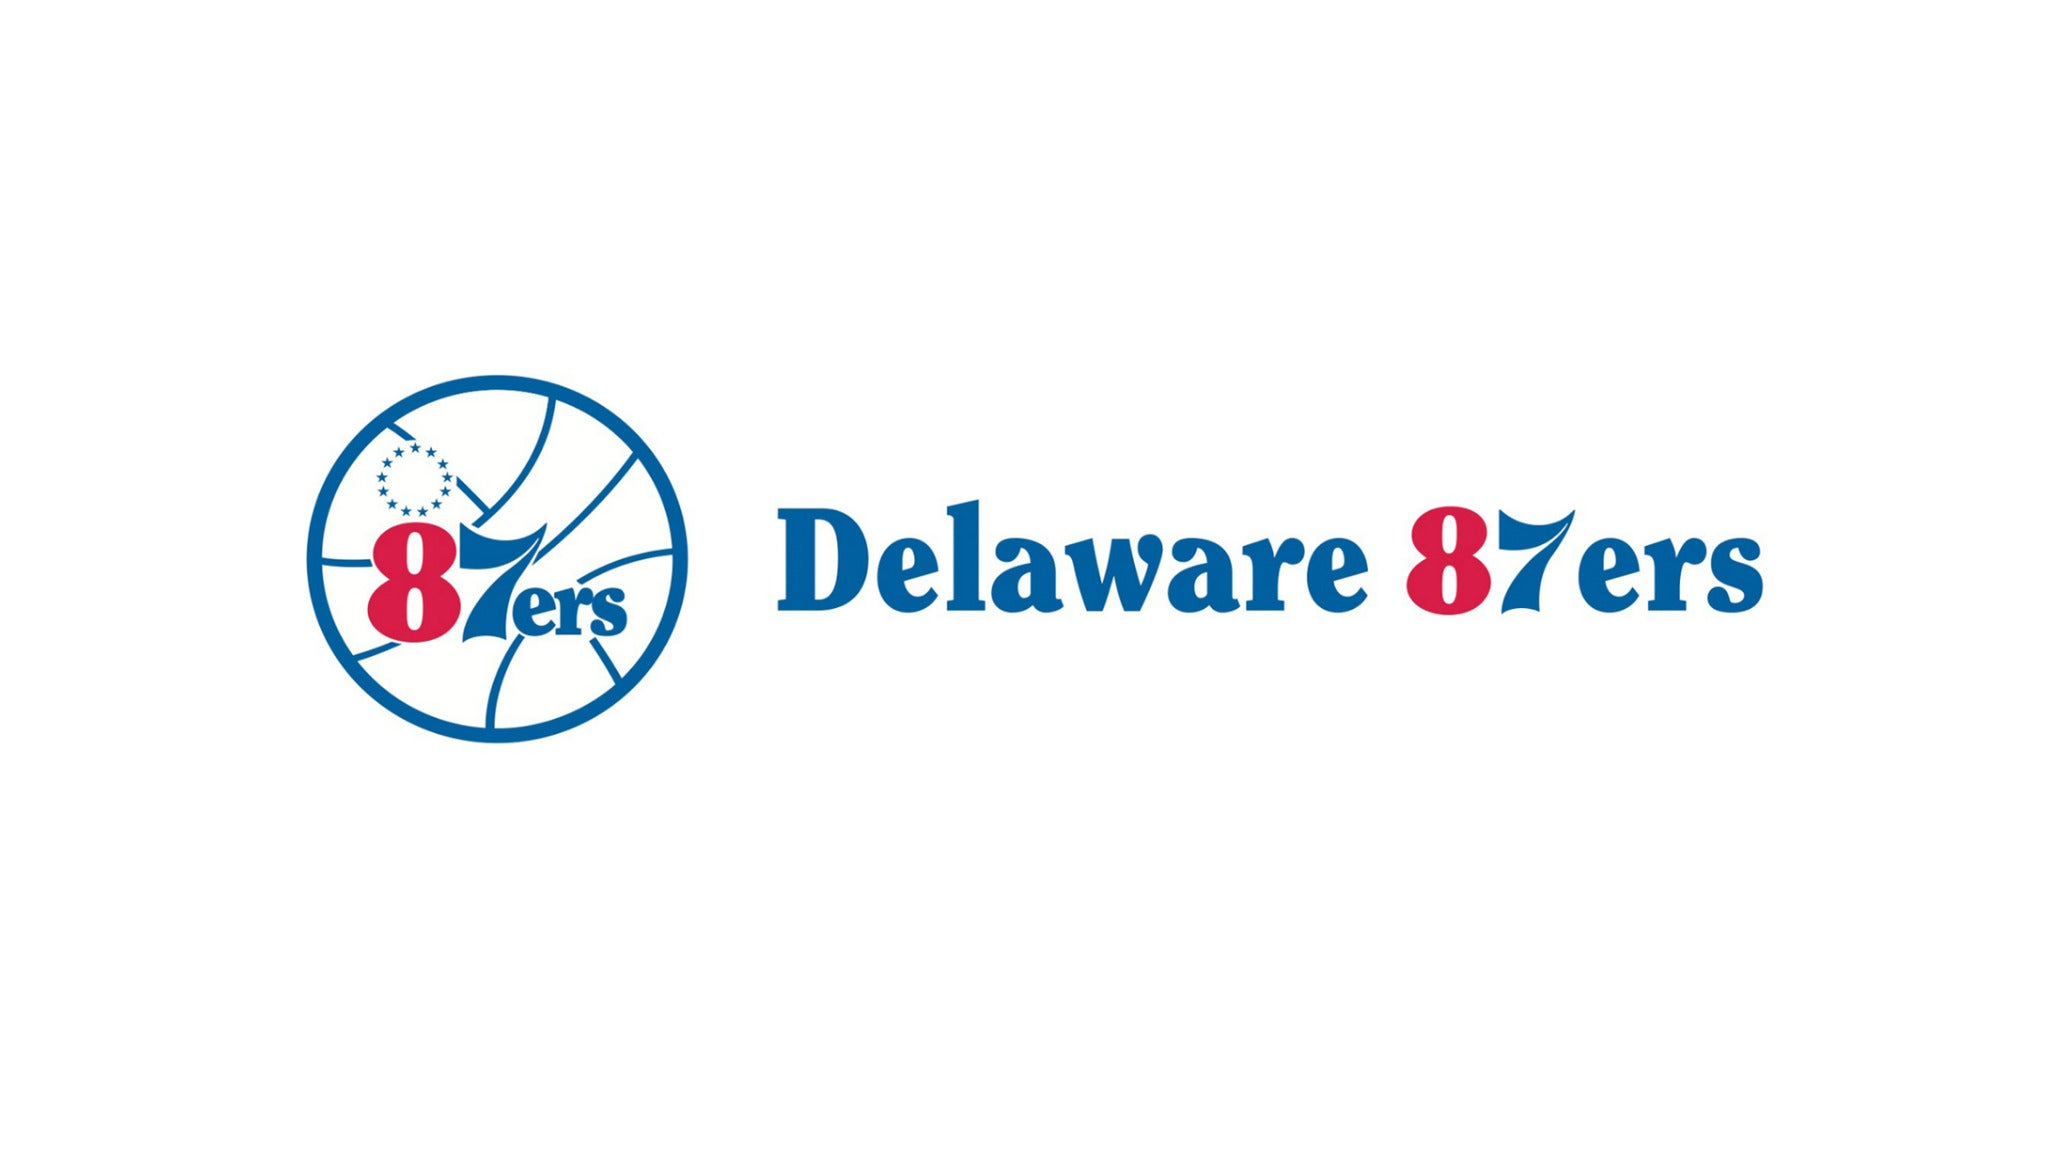 Delaware 87ers vs. Ft. Wayne Mad Ants - Newark, DE 19716